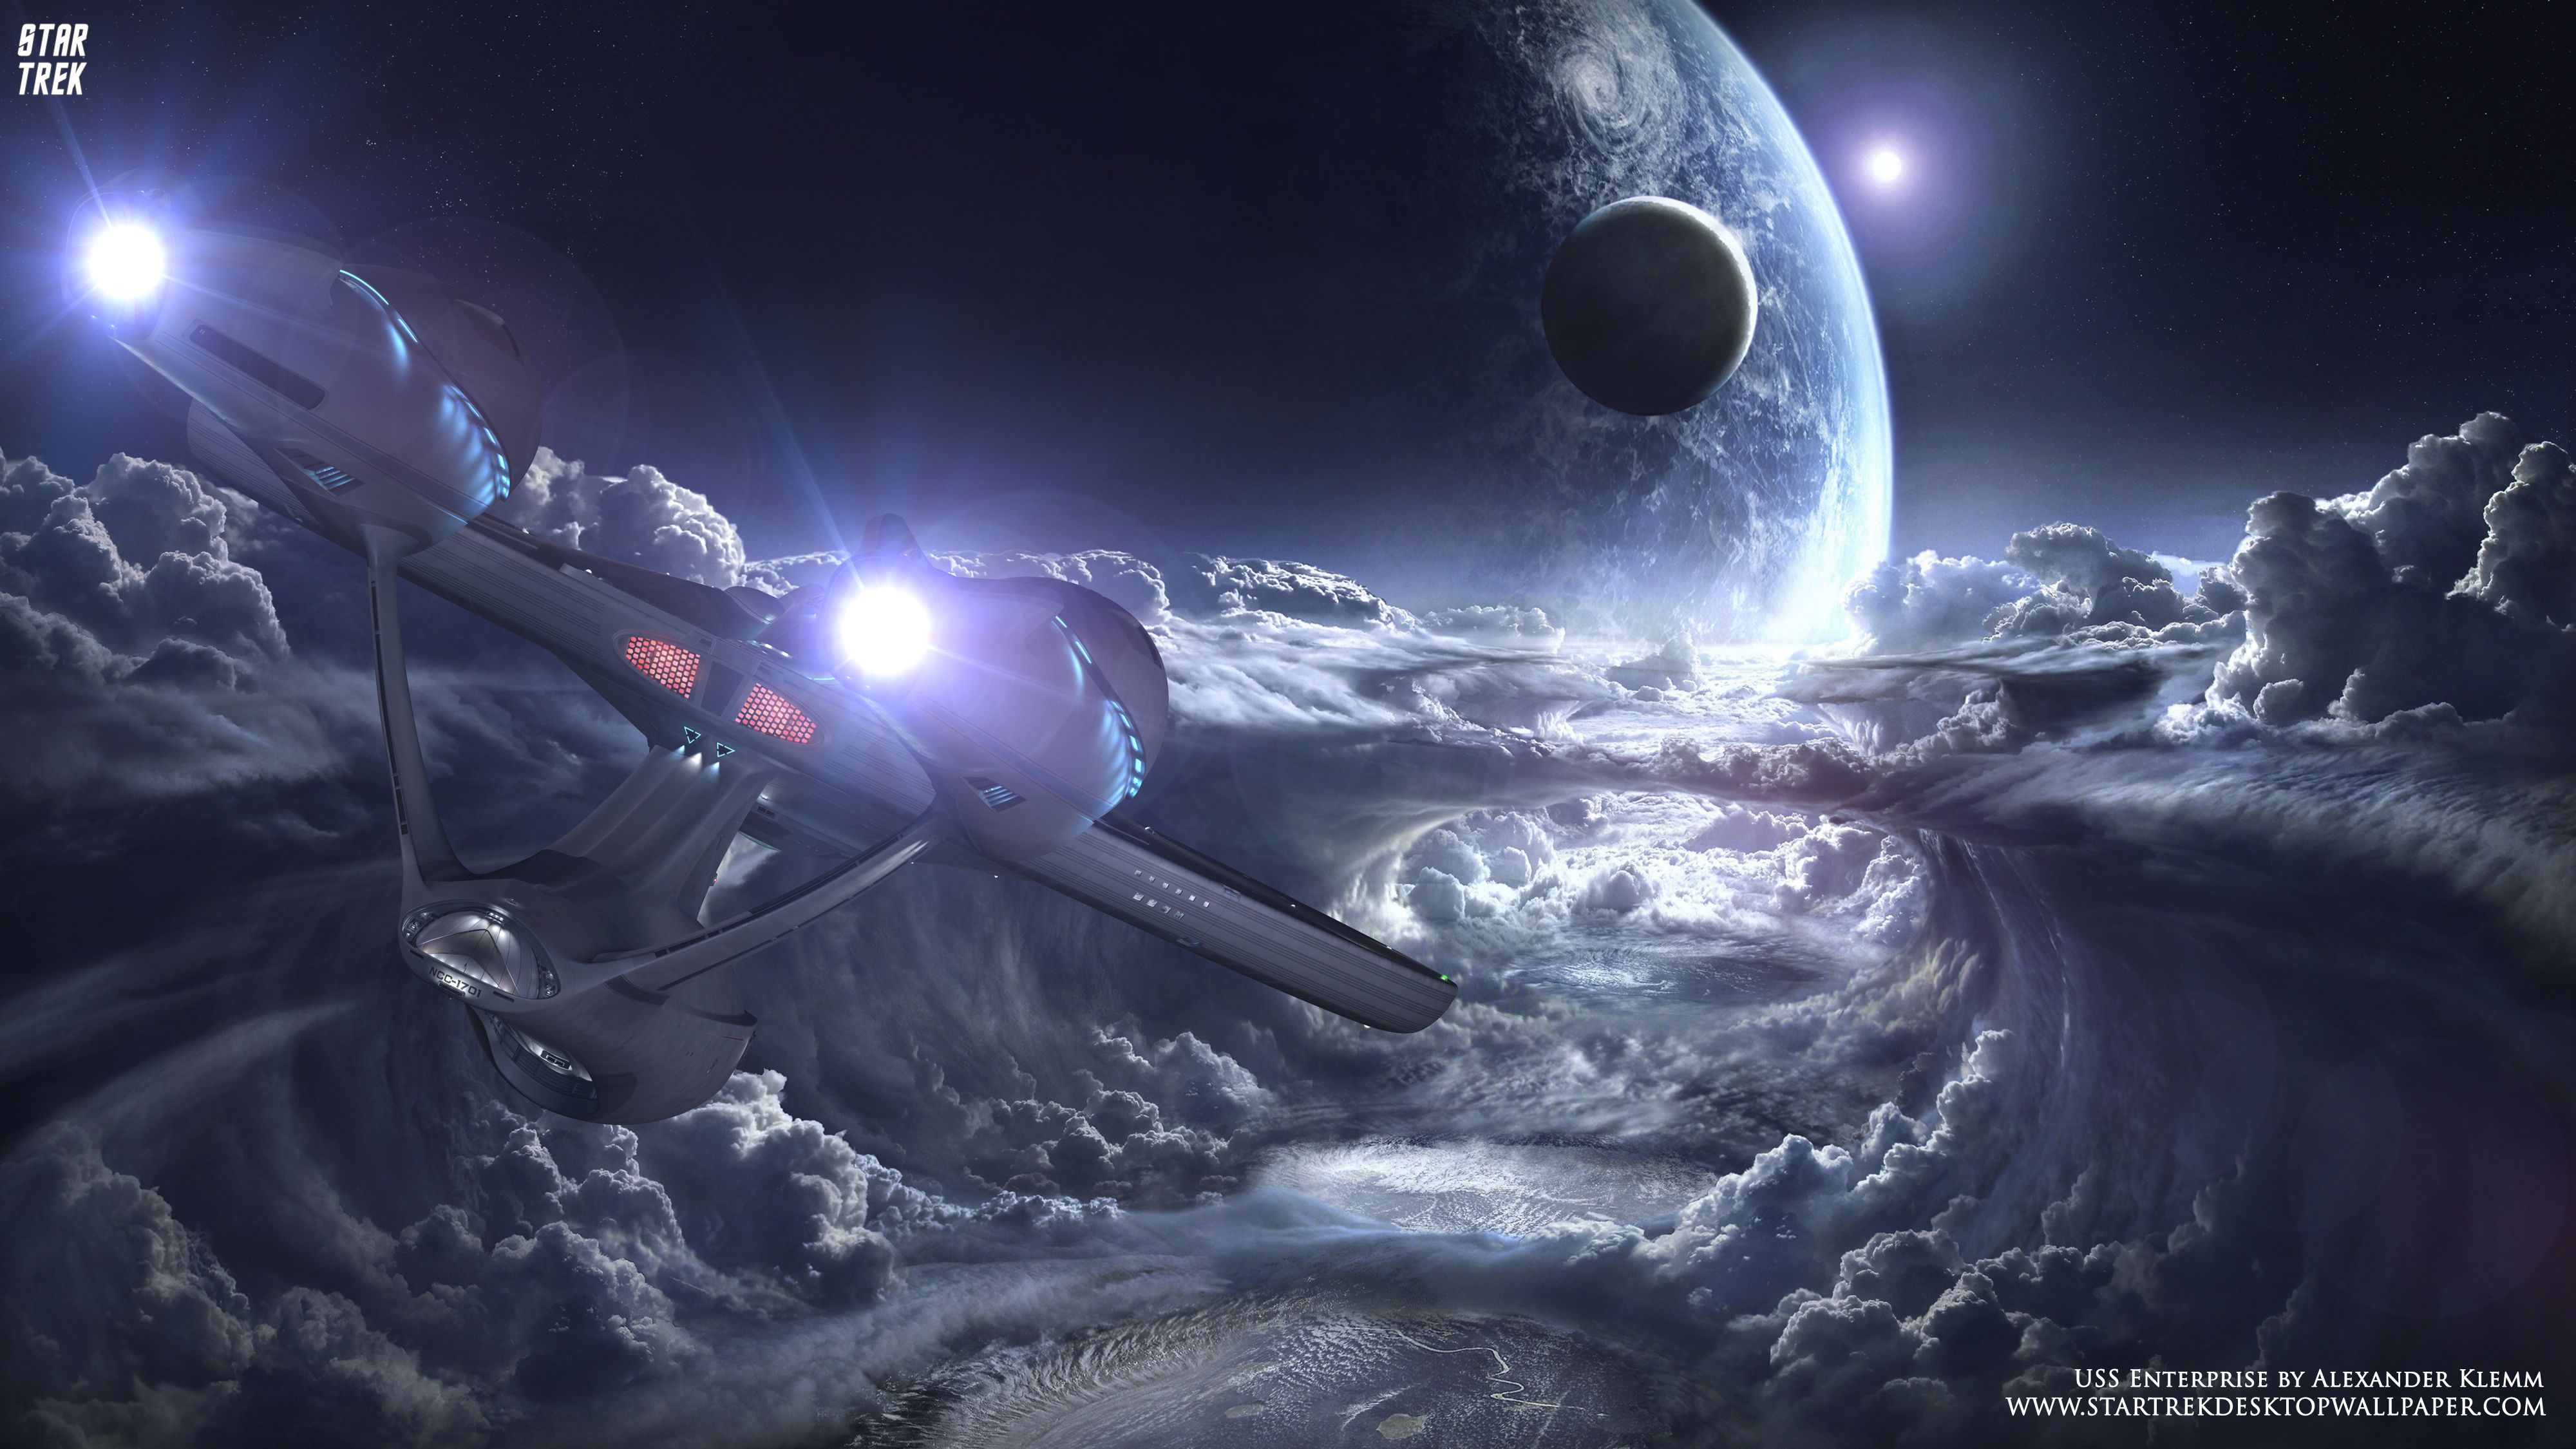 - Star Trek USS Enterprise NCC-1701 Over New Planet